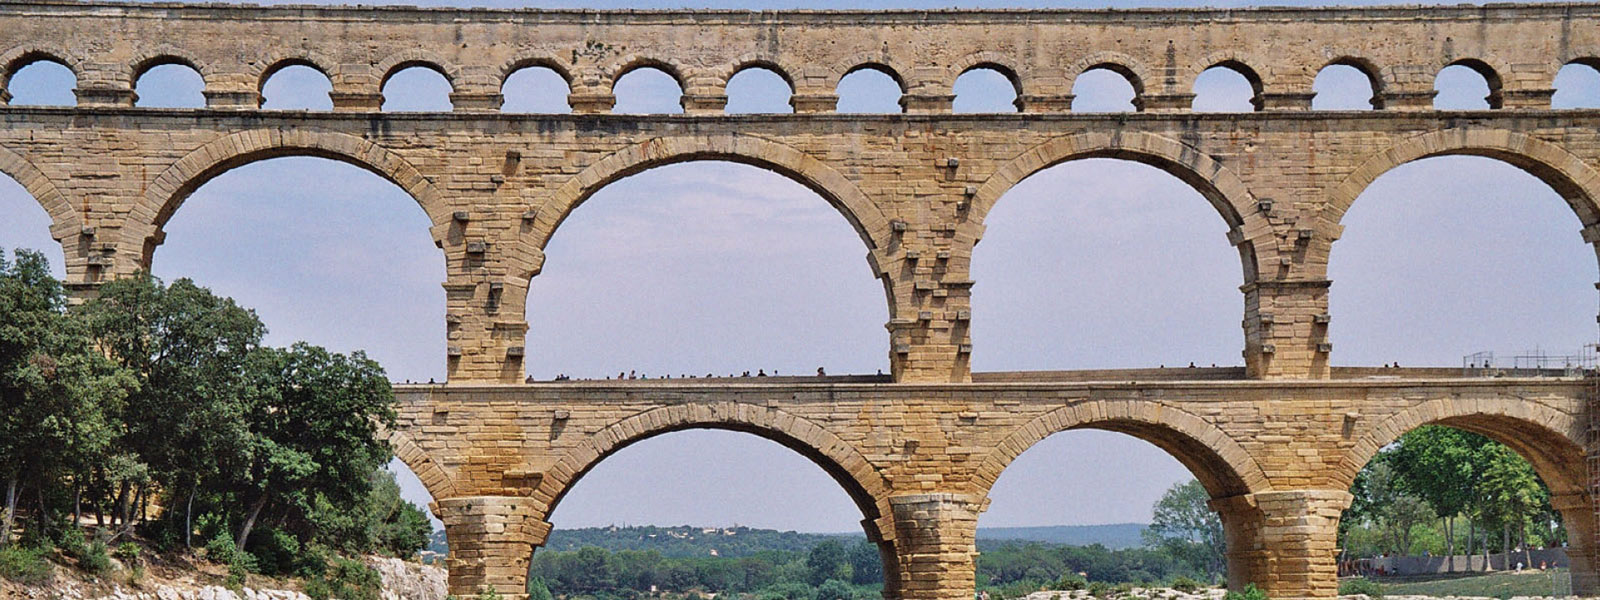 https://www.selectcottages.com/sites/default/files/revslider/image/pont-du-gard.jpg